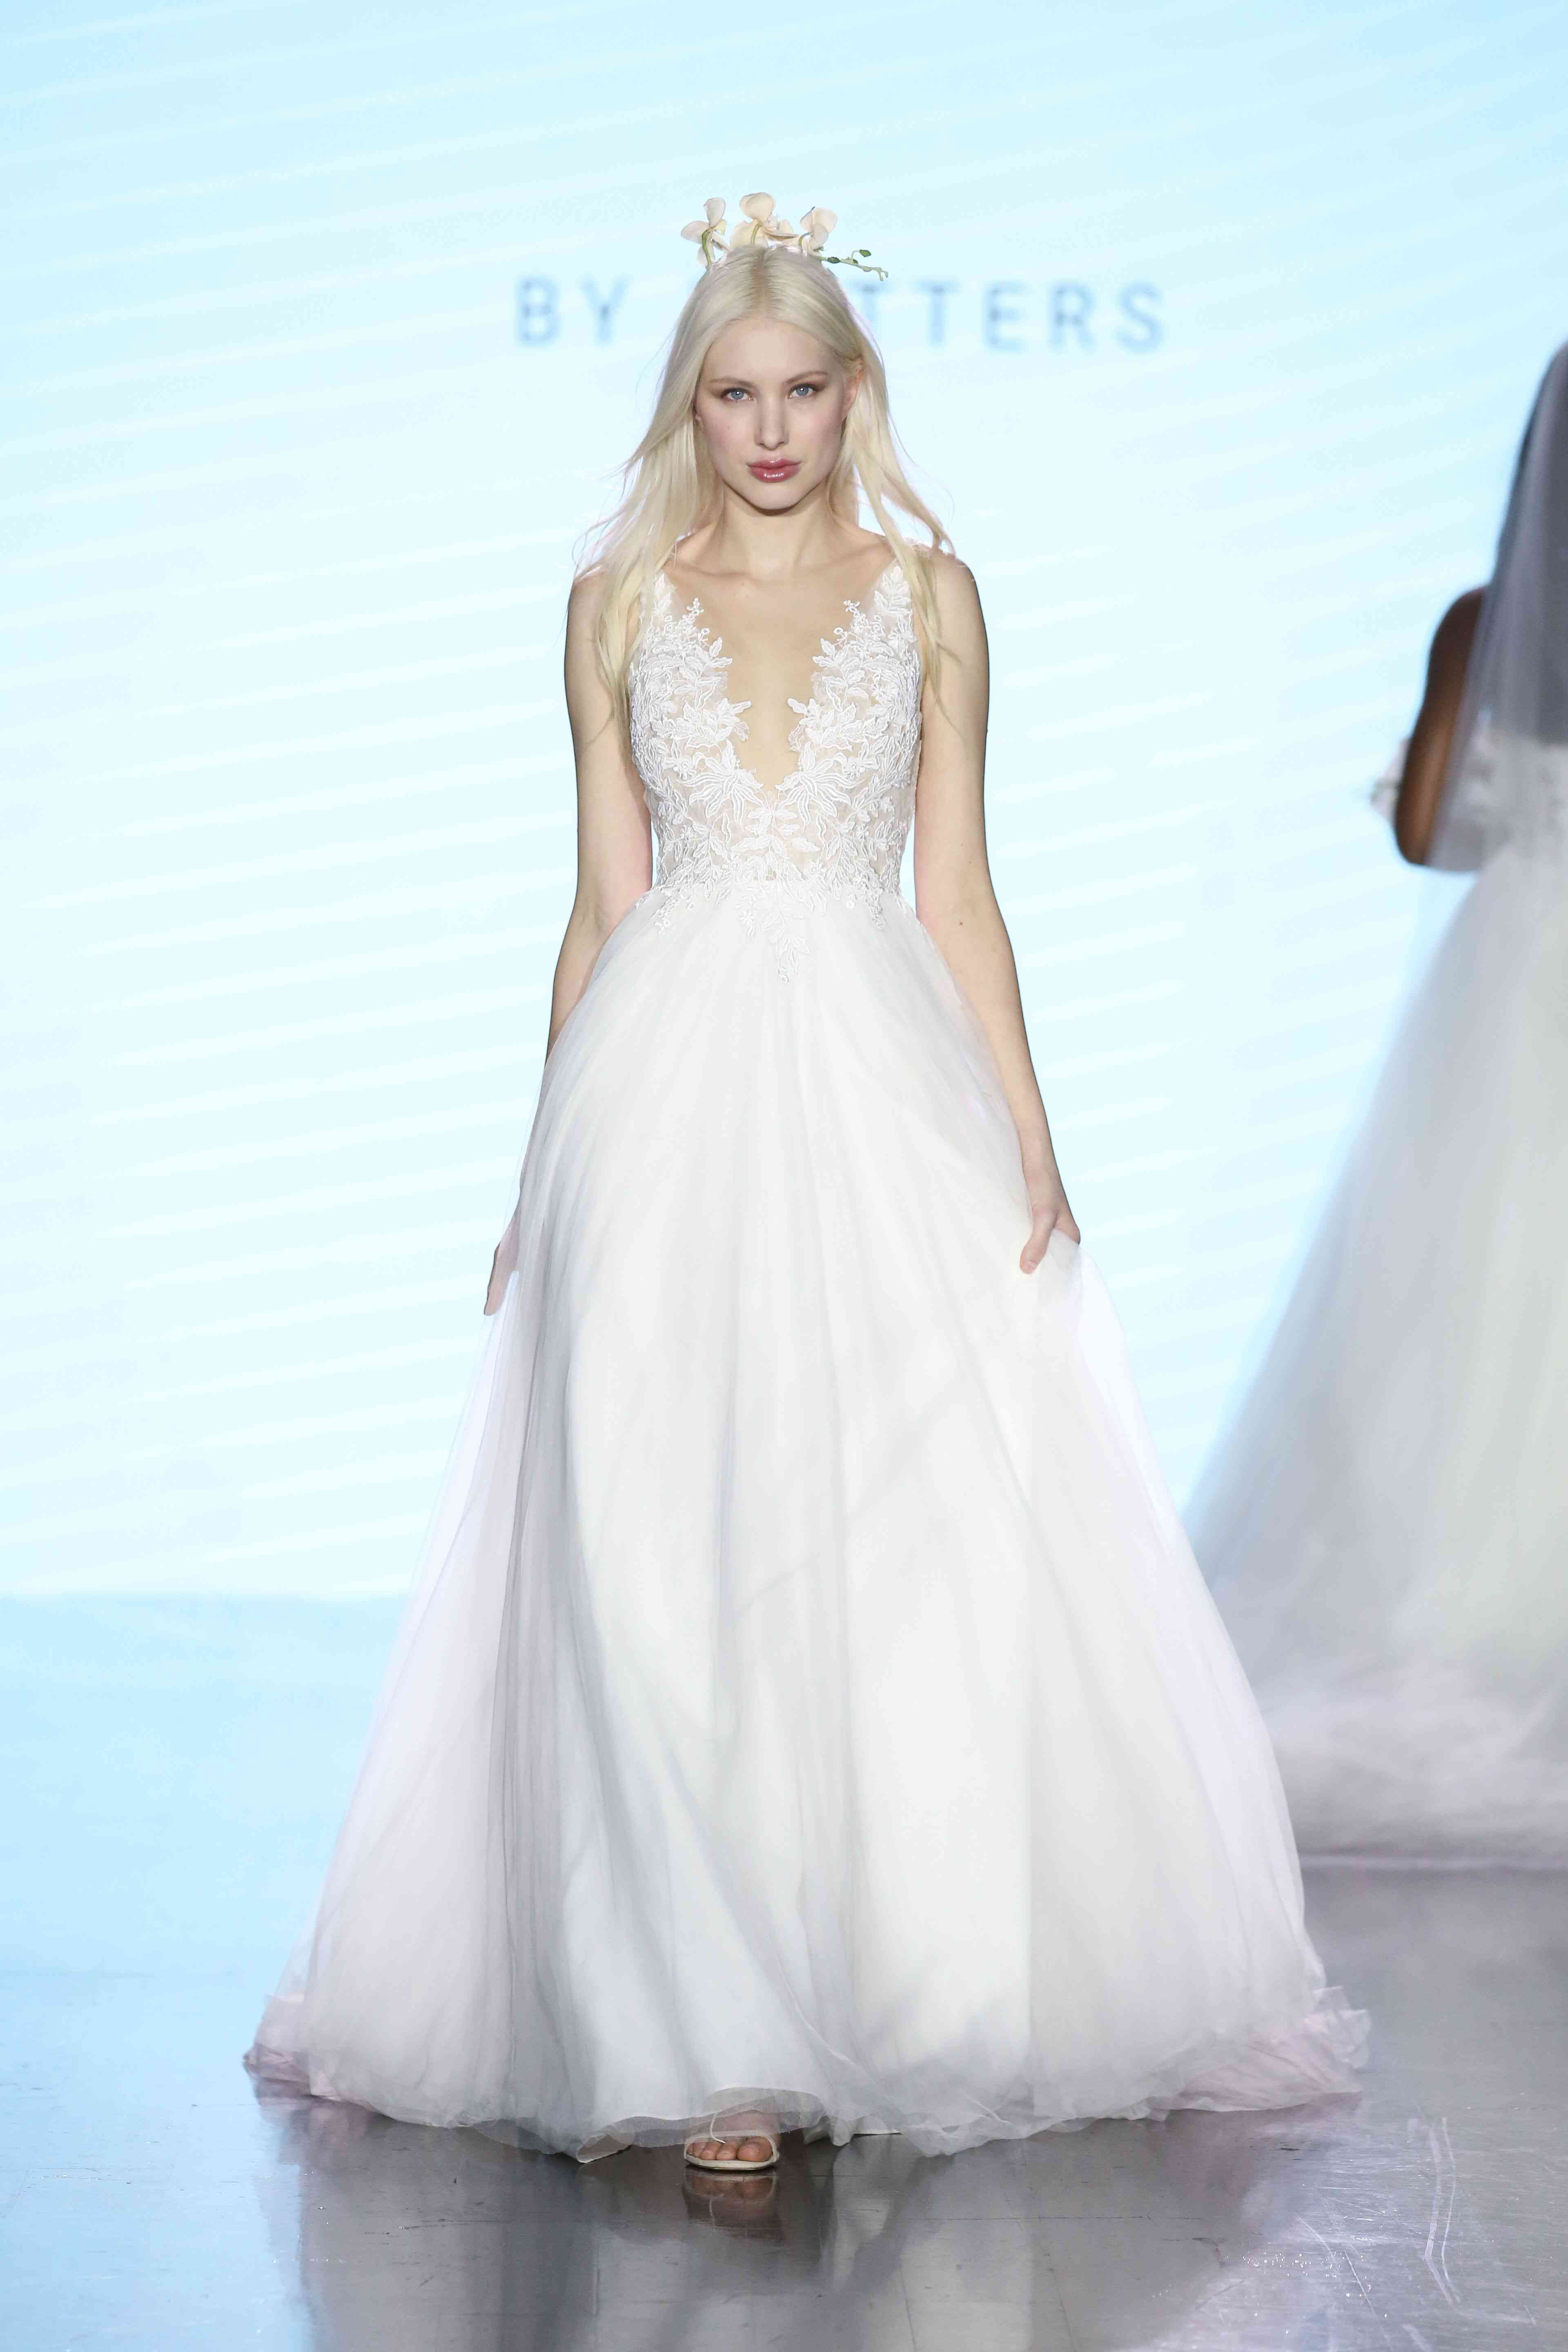 Model in ballgown with a lace-embroidered plunging illusion bodice and full skirt